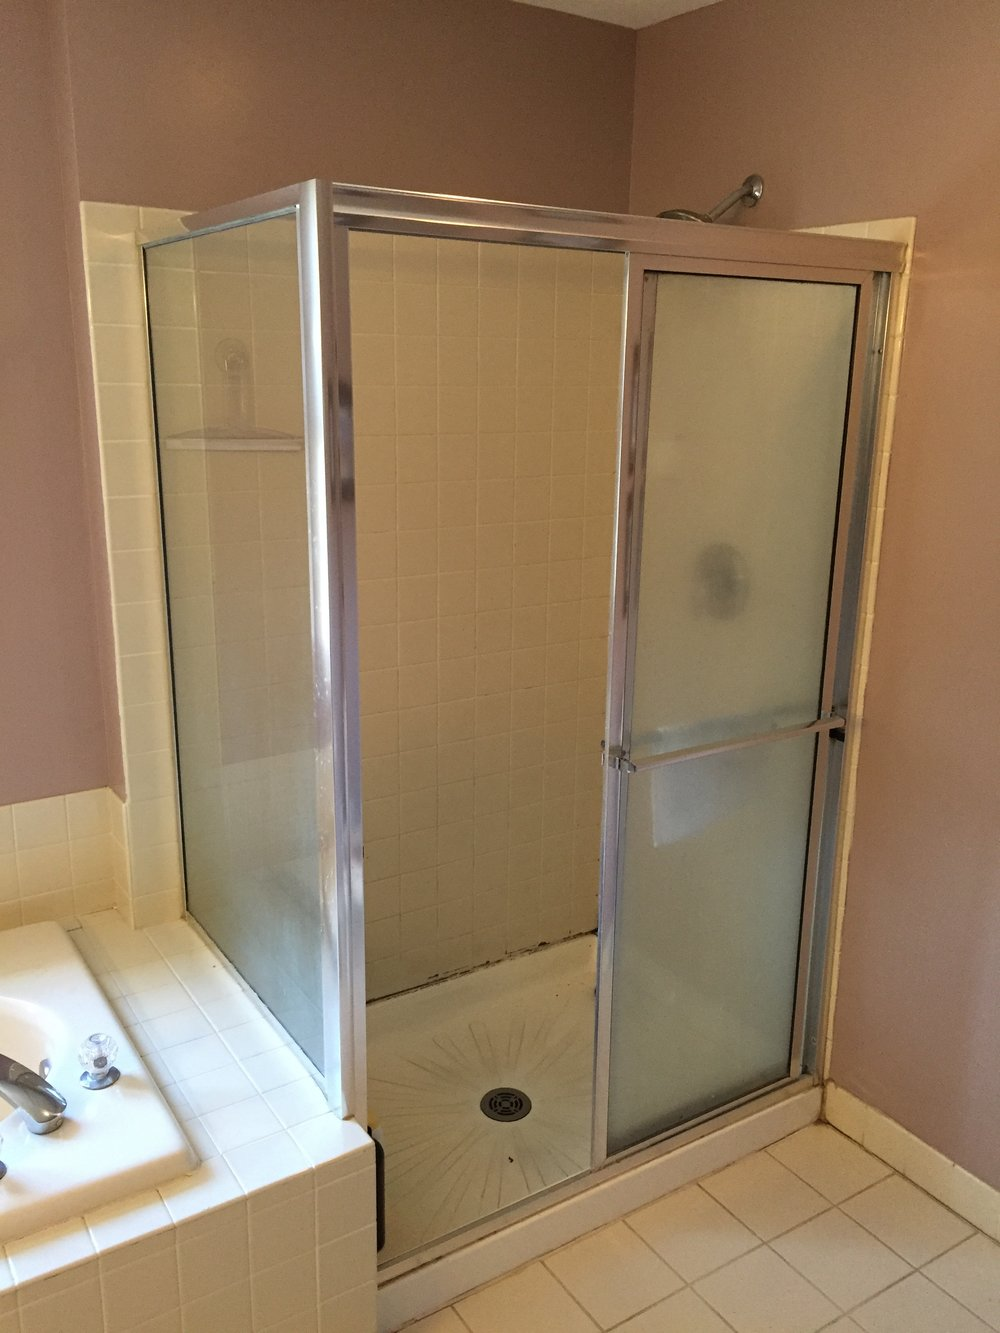 Existing shower